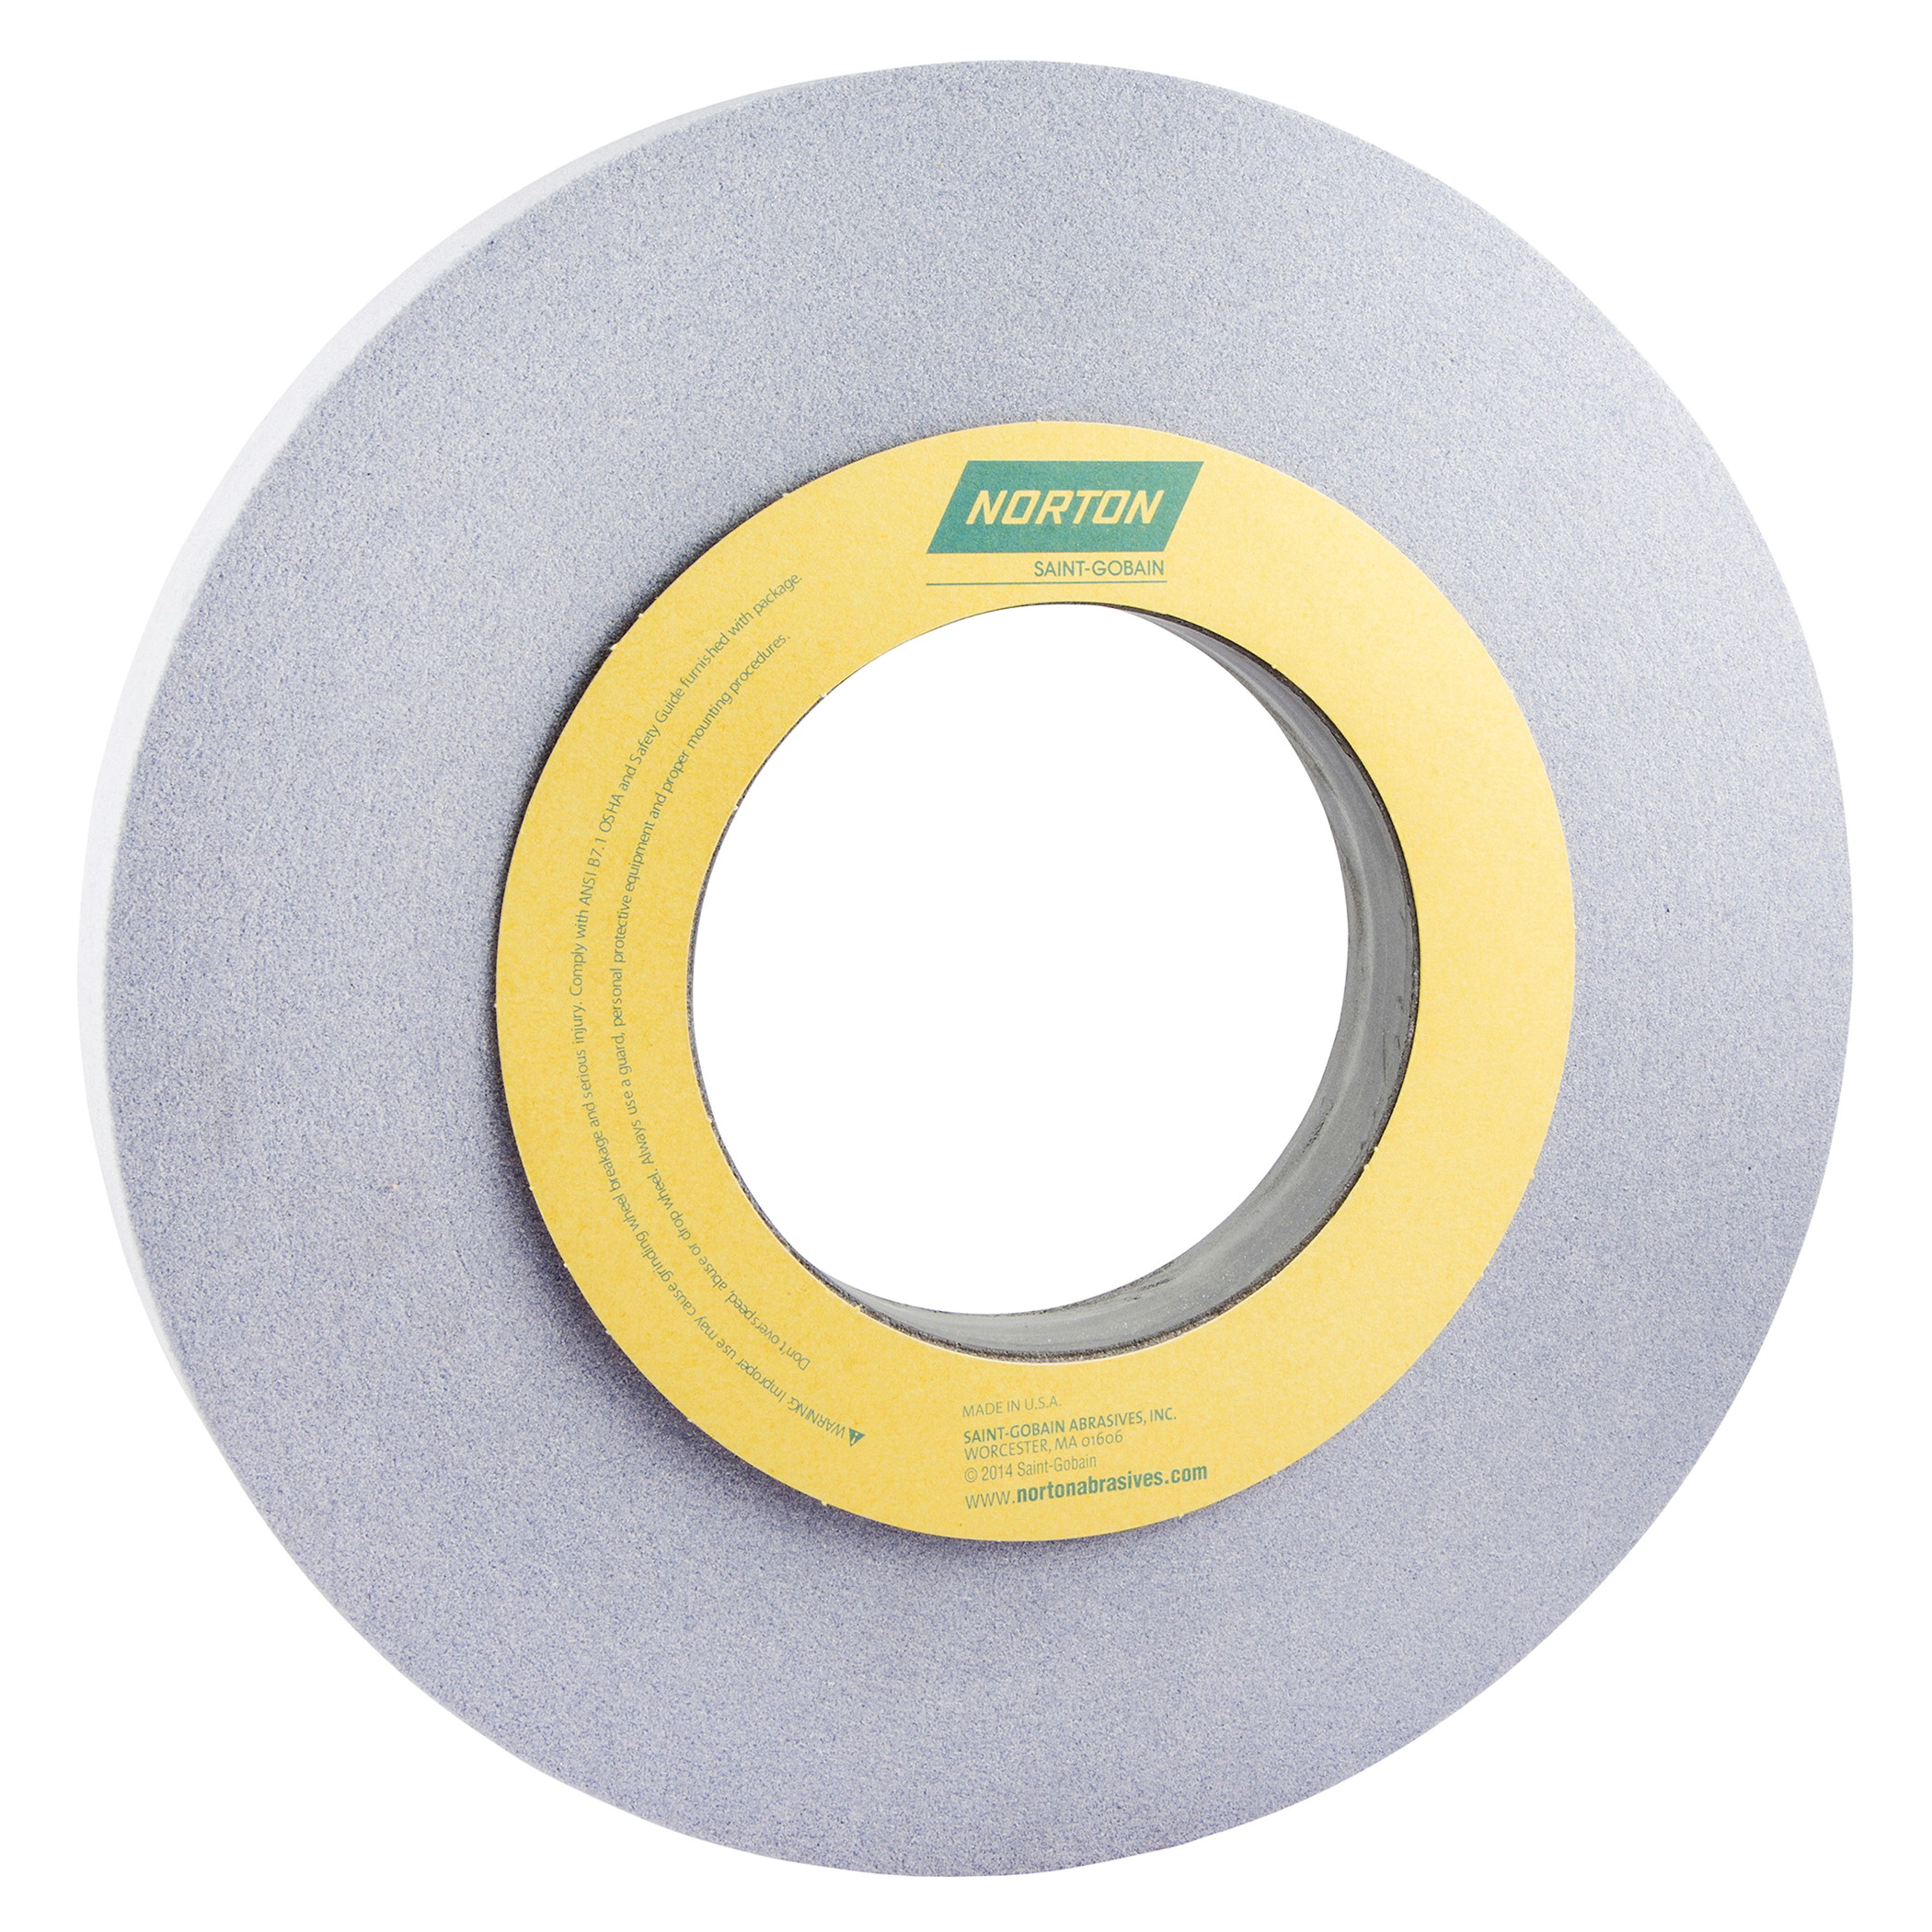 Norton® 66253262696 32A Straight Toolroom Wheel, 12 in Dia x 1 in THK, 5 in Center Hole, 80 Grit, Aluminum Oxide Abrasive